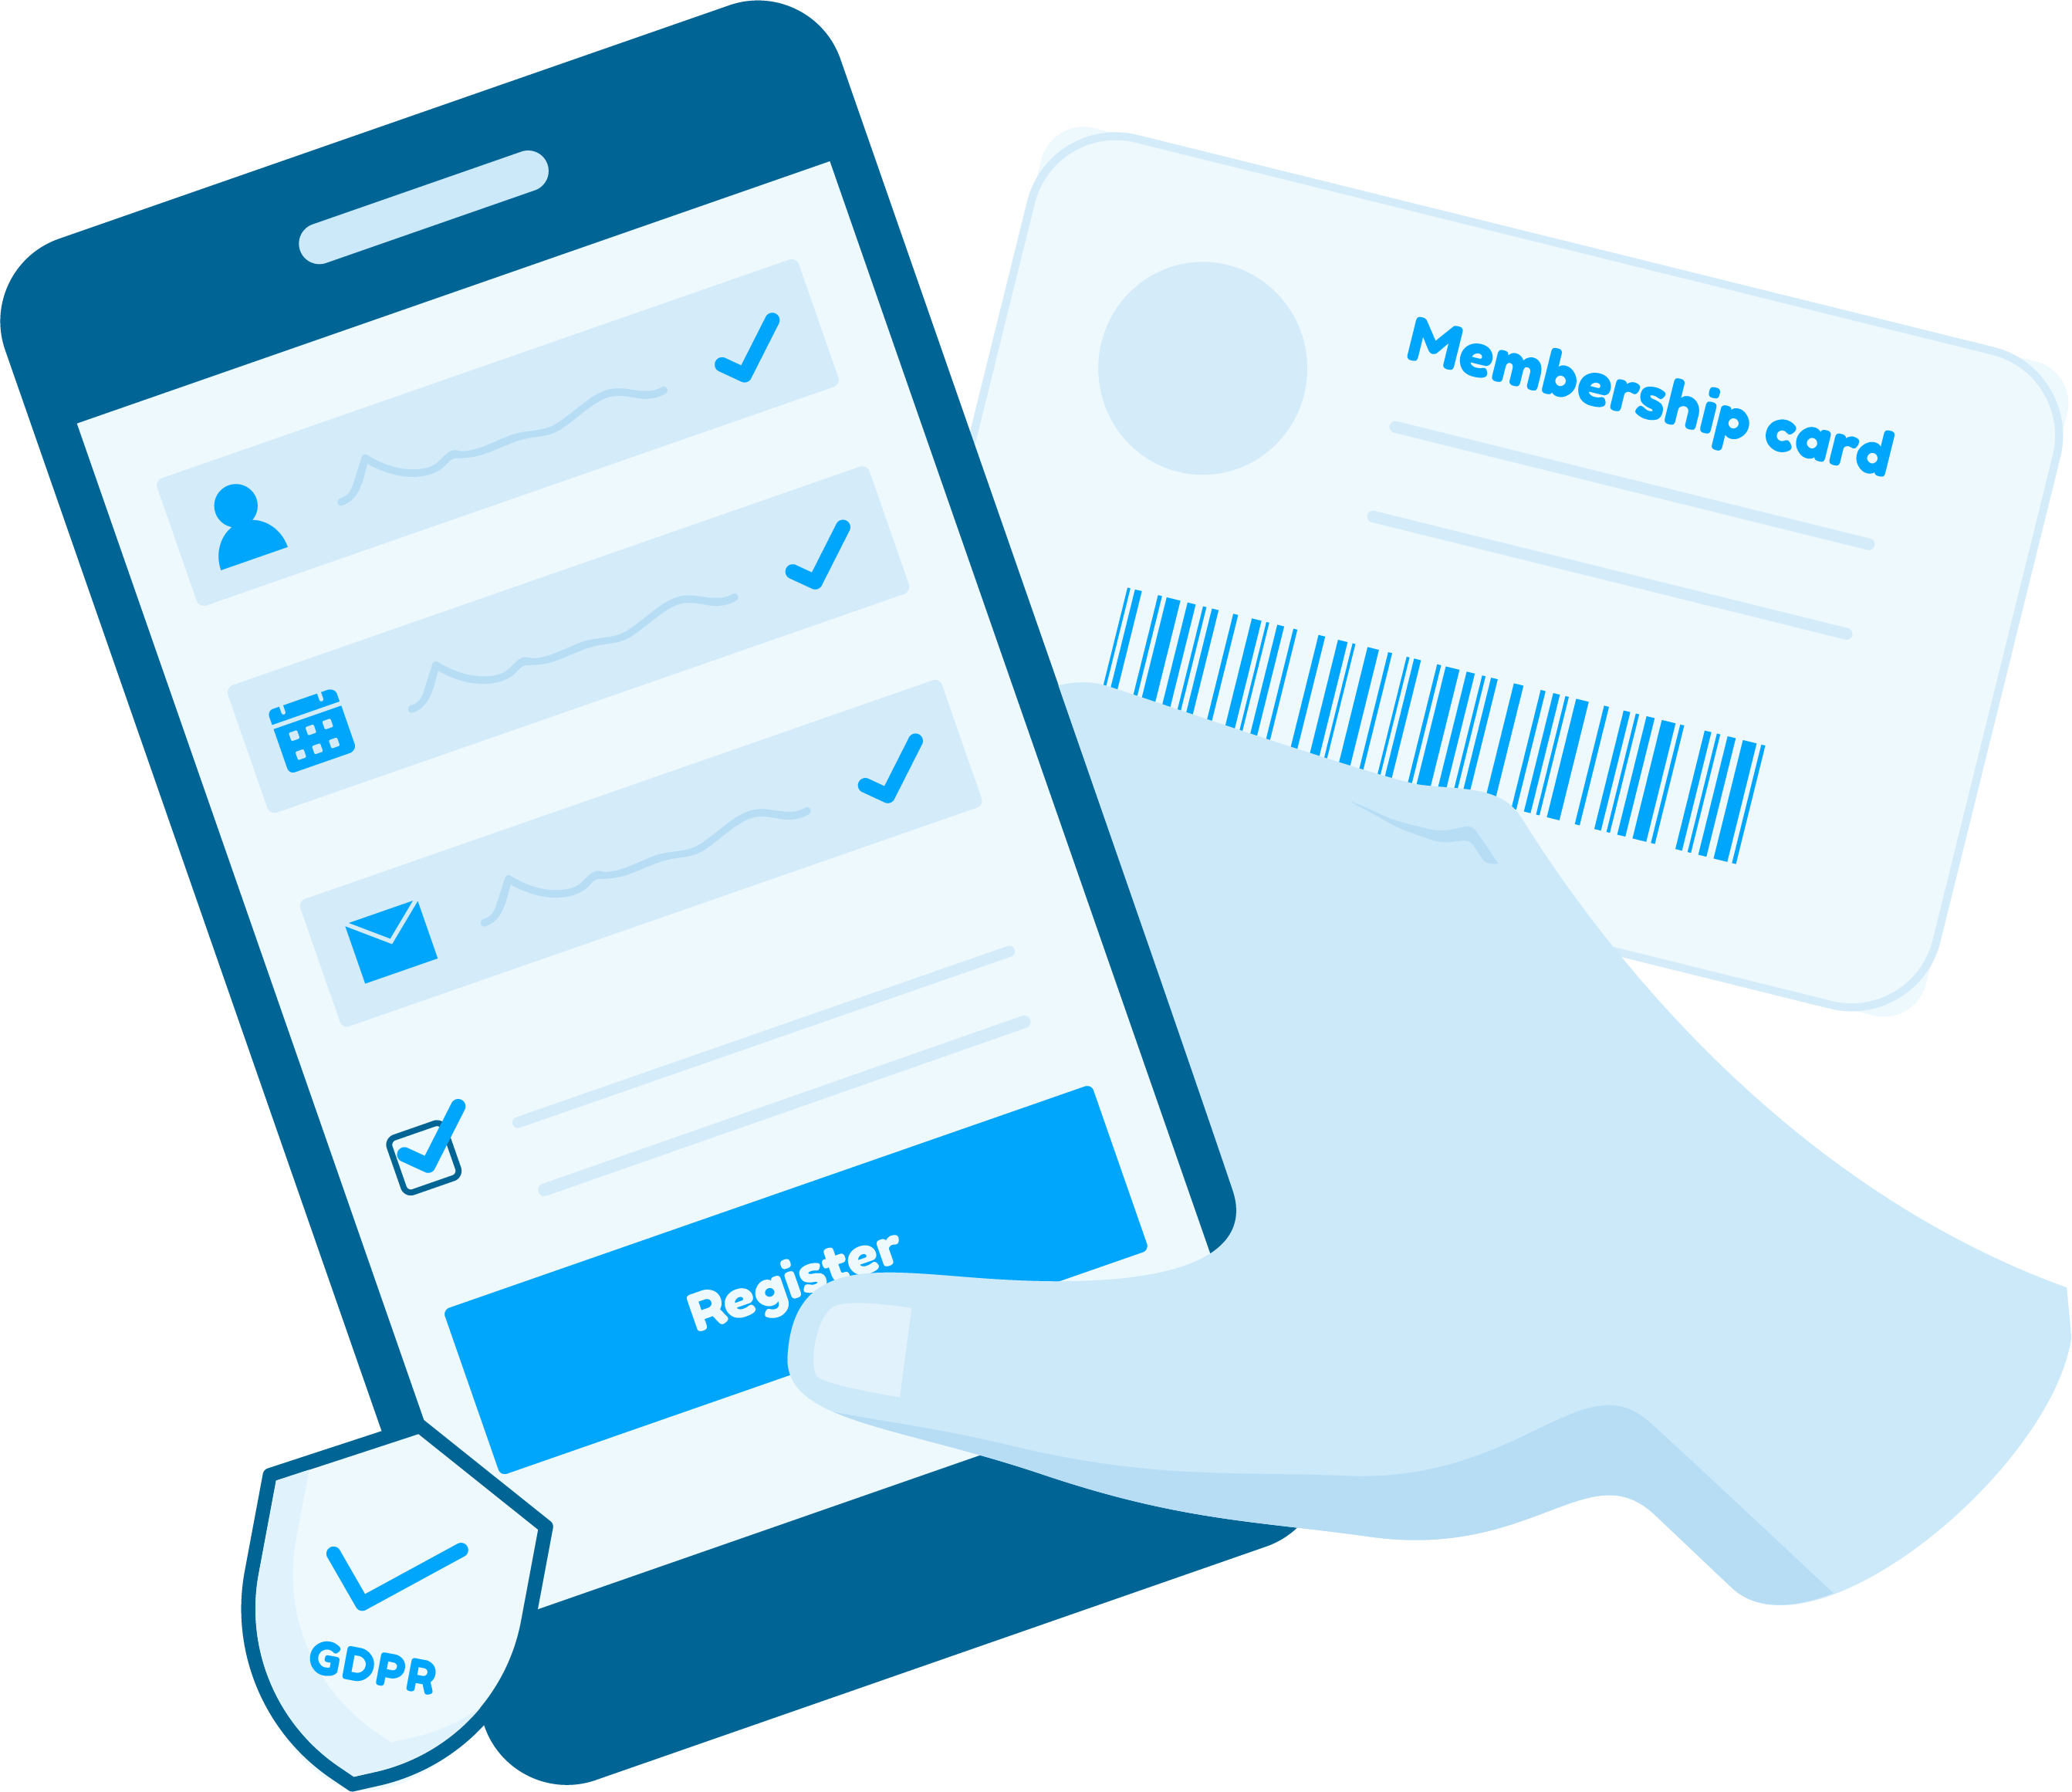 Customer Onboarding Service of Accelerate2